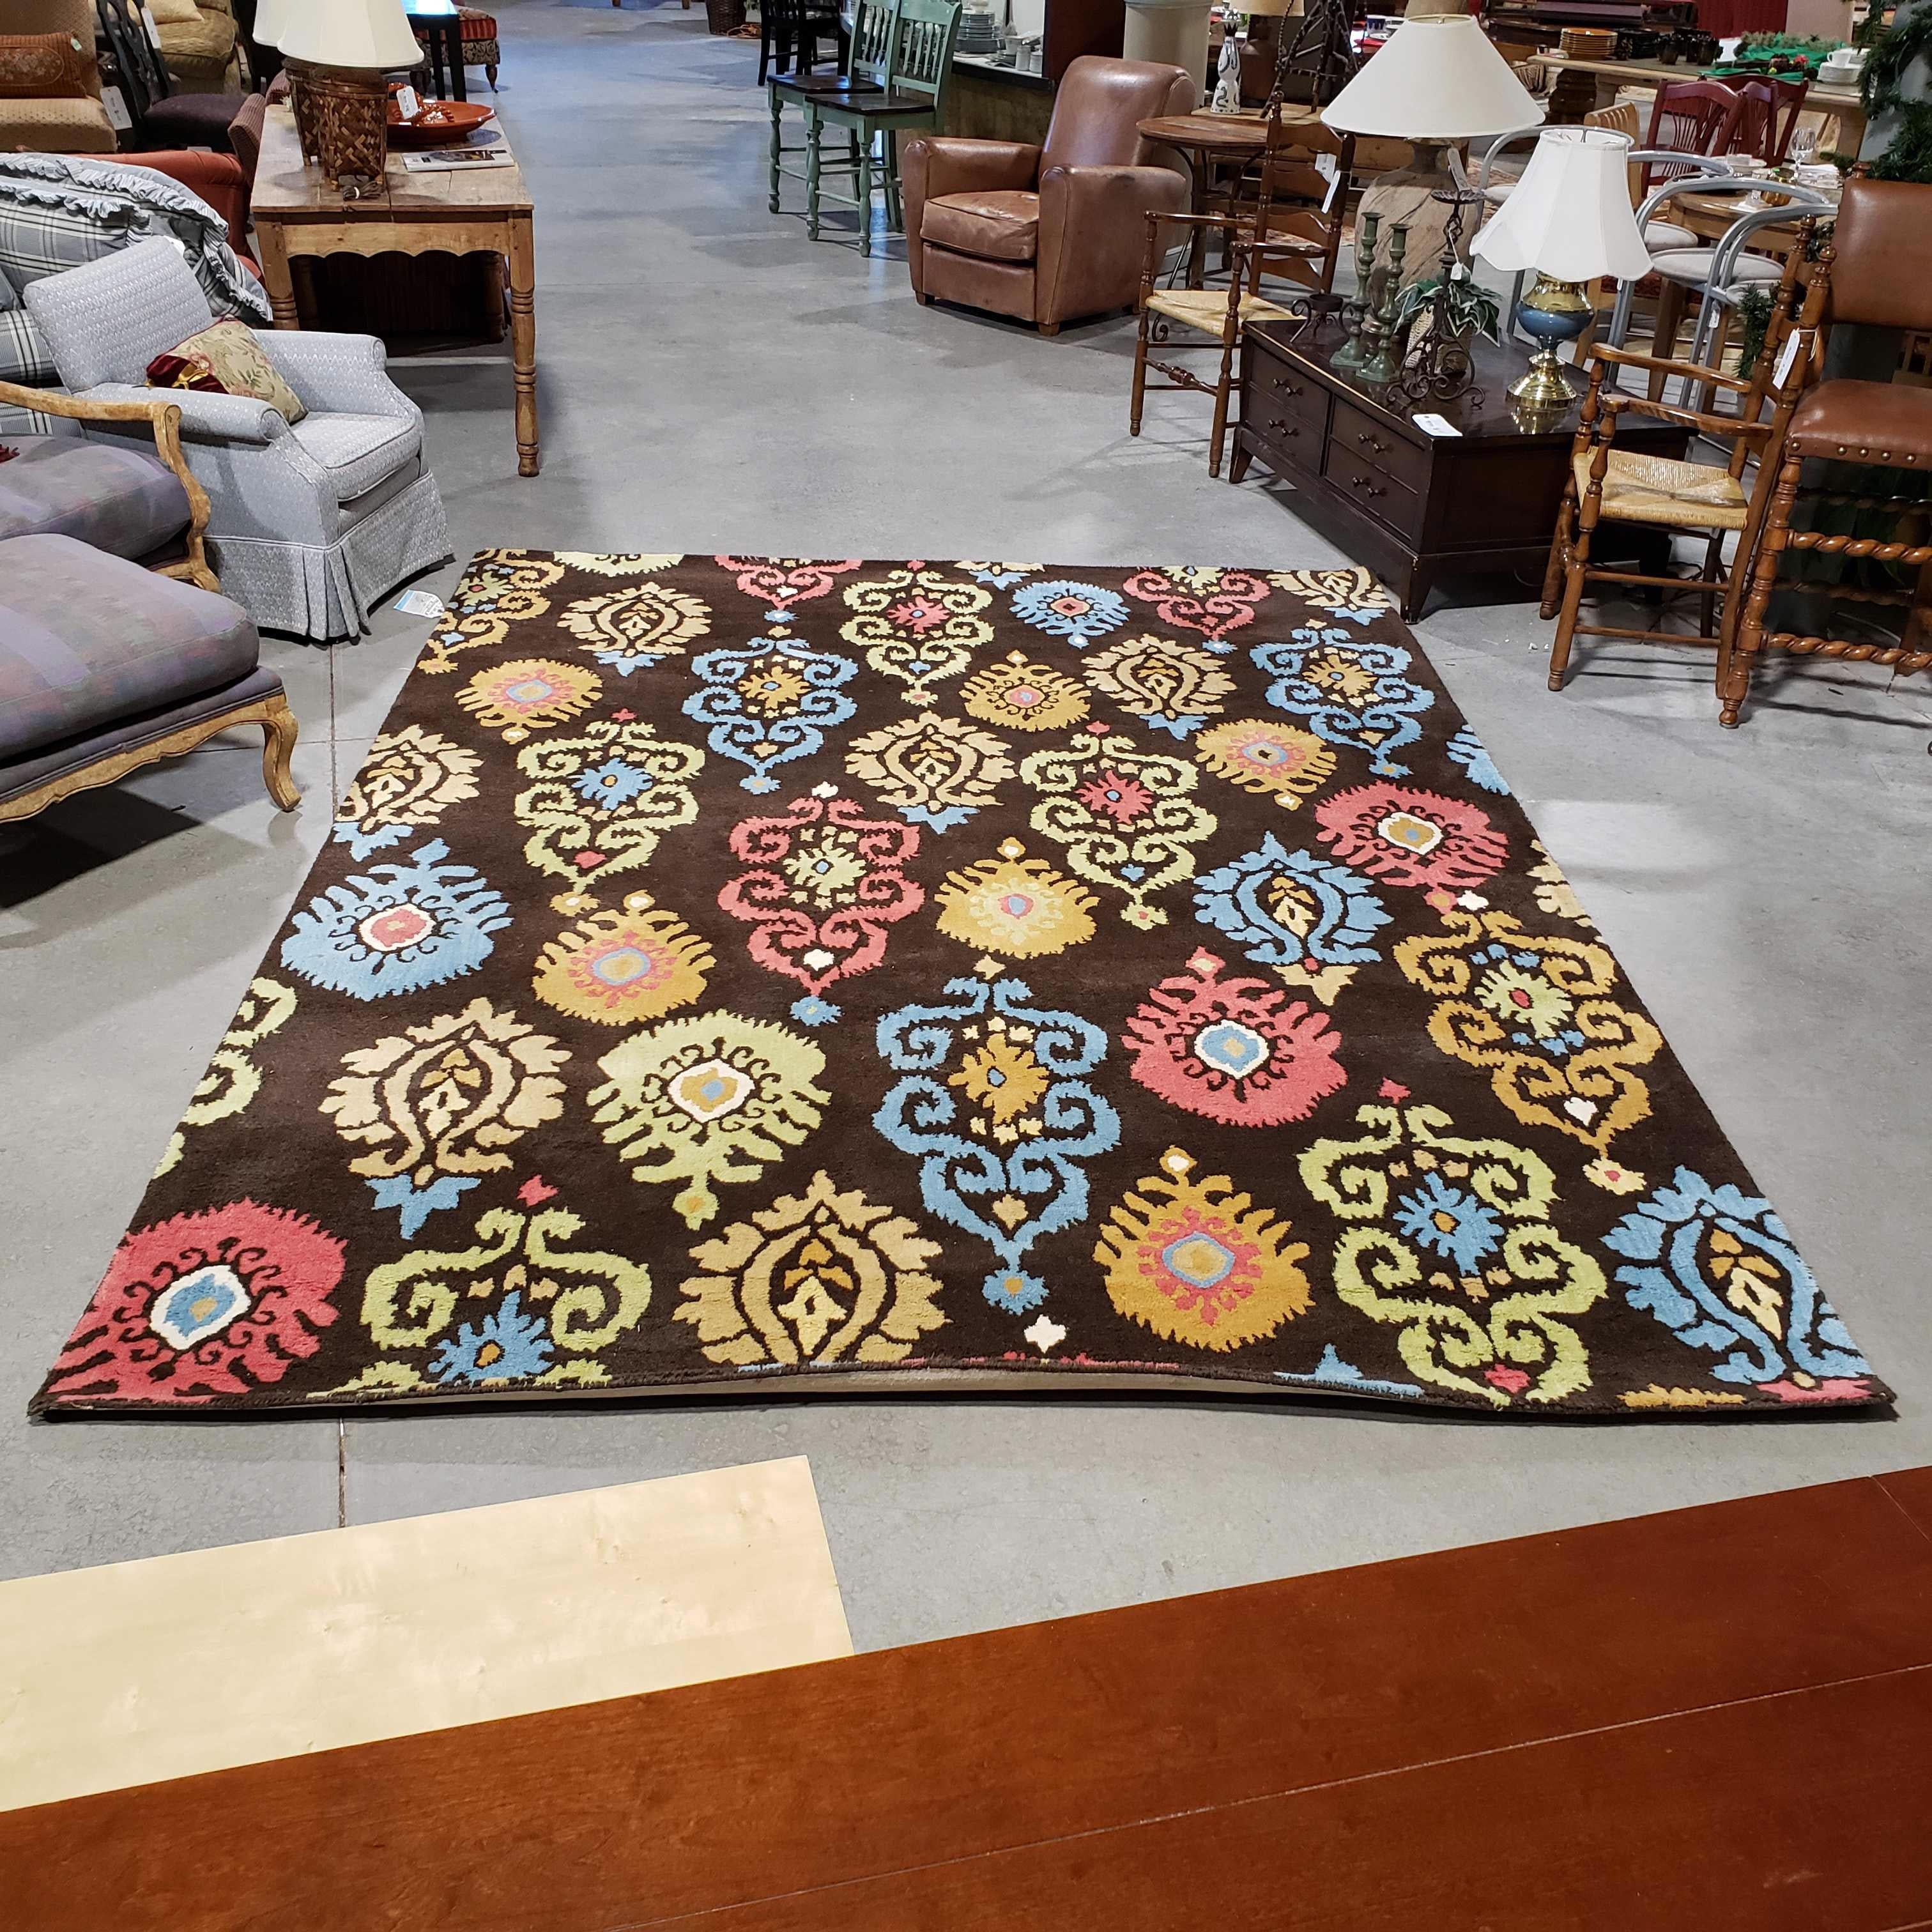 8'x 11' Company C Good Weave Wool Brown Coral Blue Gold Area Rug